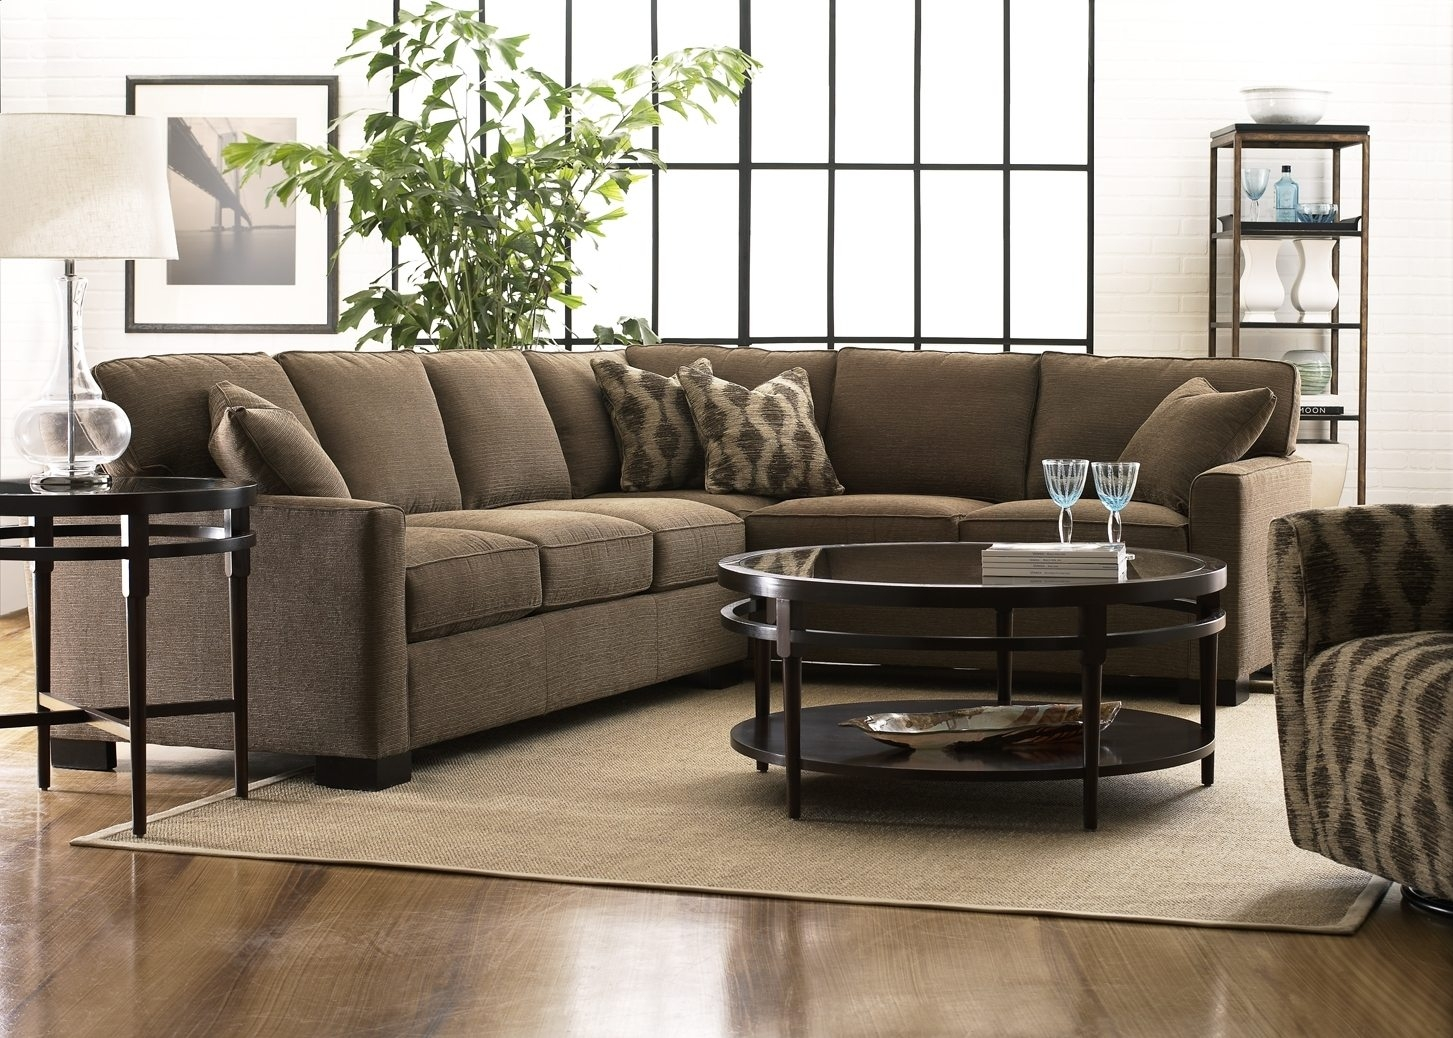 Inspiration About Glamorous Sectional Sofas For Small Living Rooms 85 On Albany Pertaining To Industries